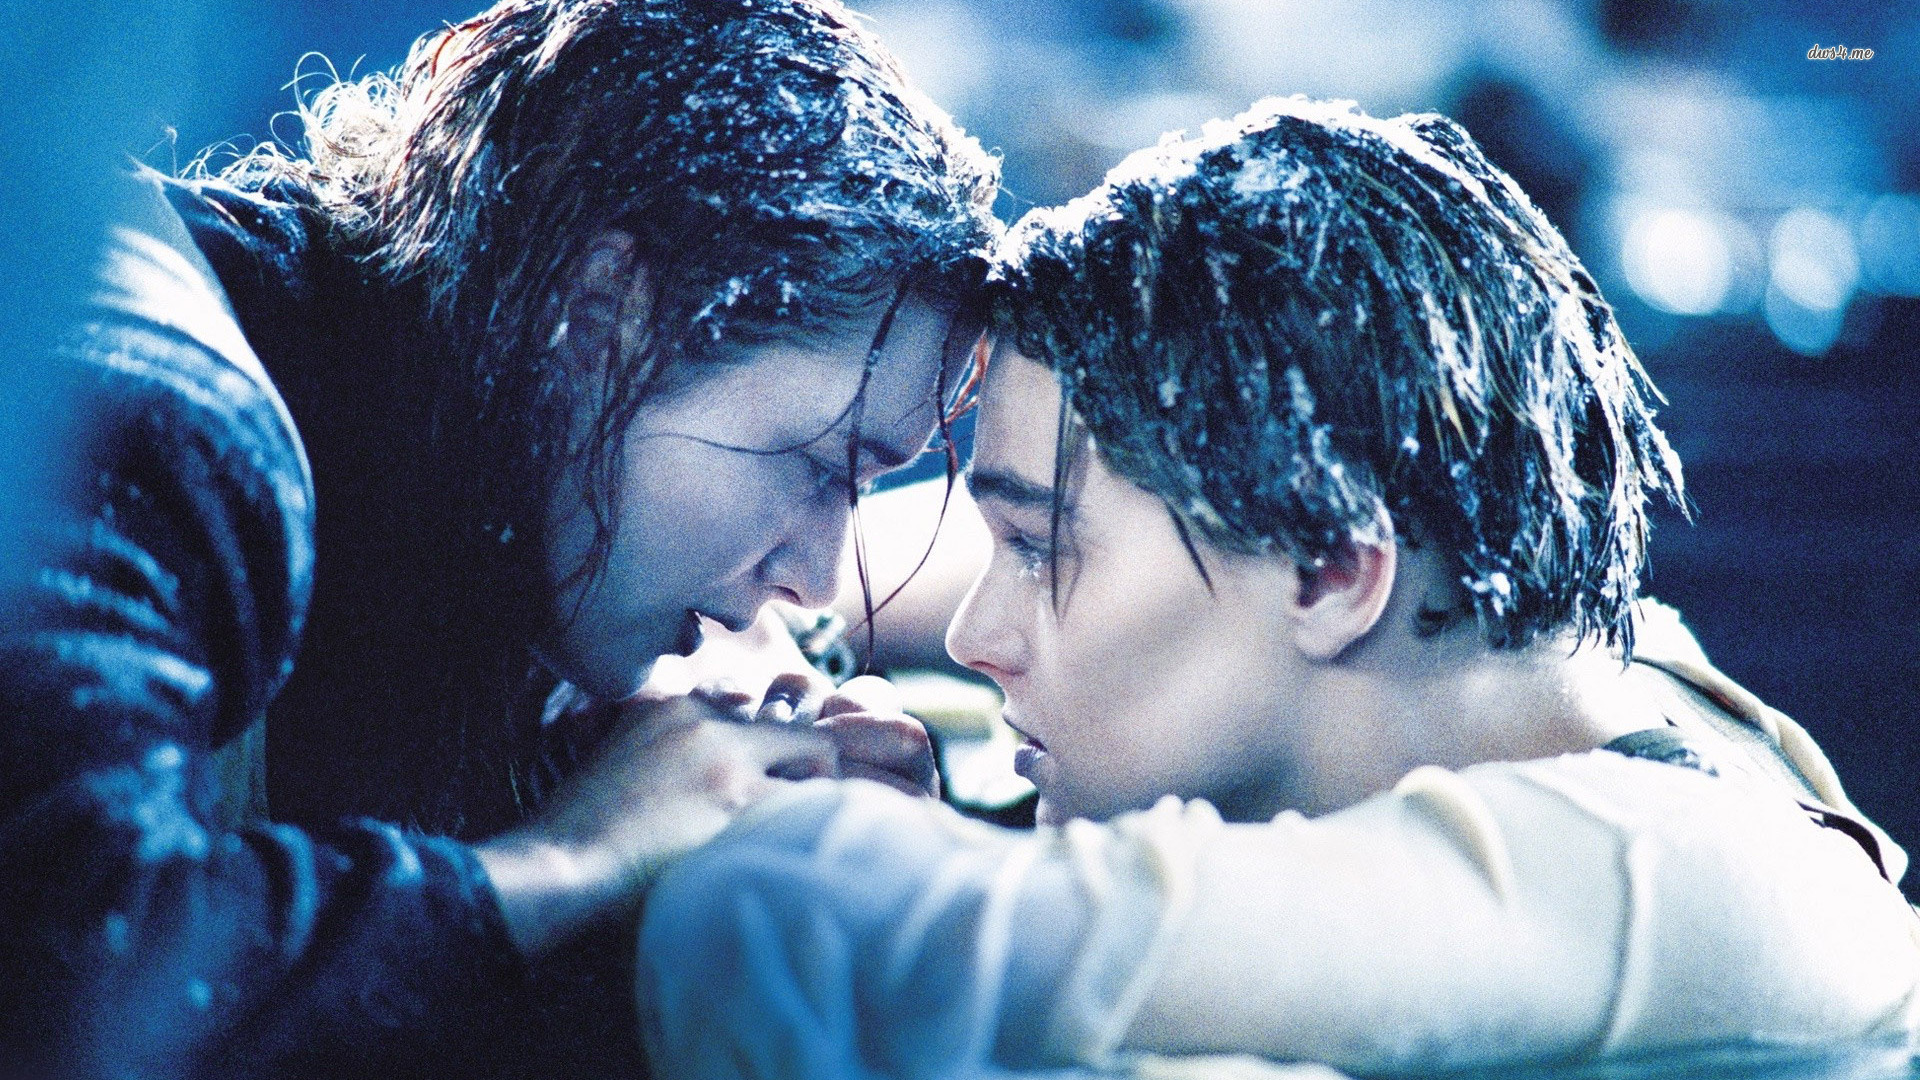 13 things you never knew about the film titanic - woman's own